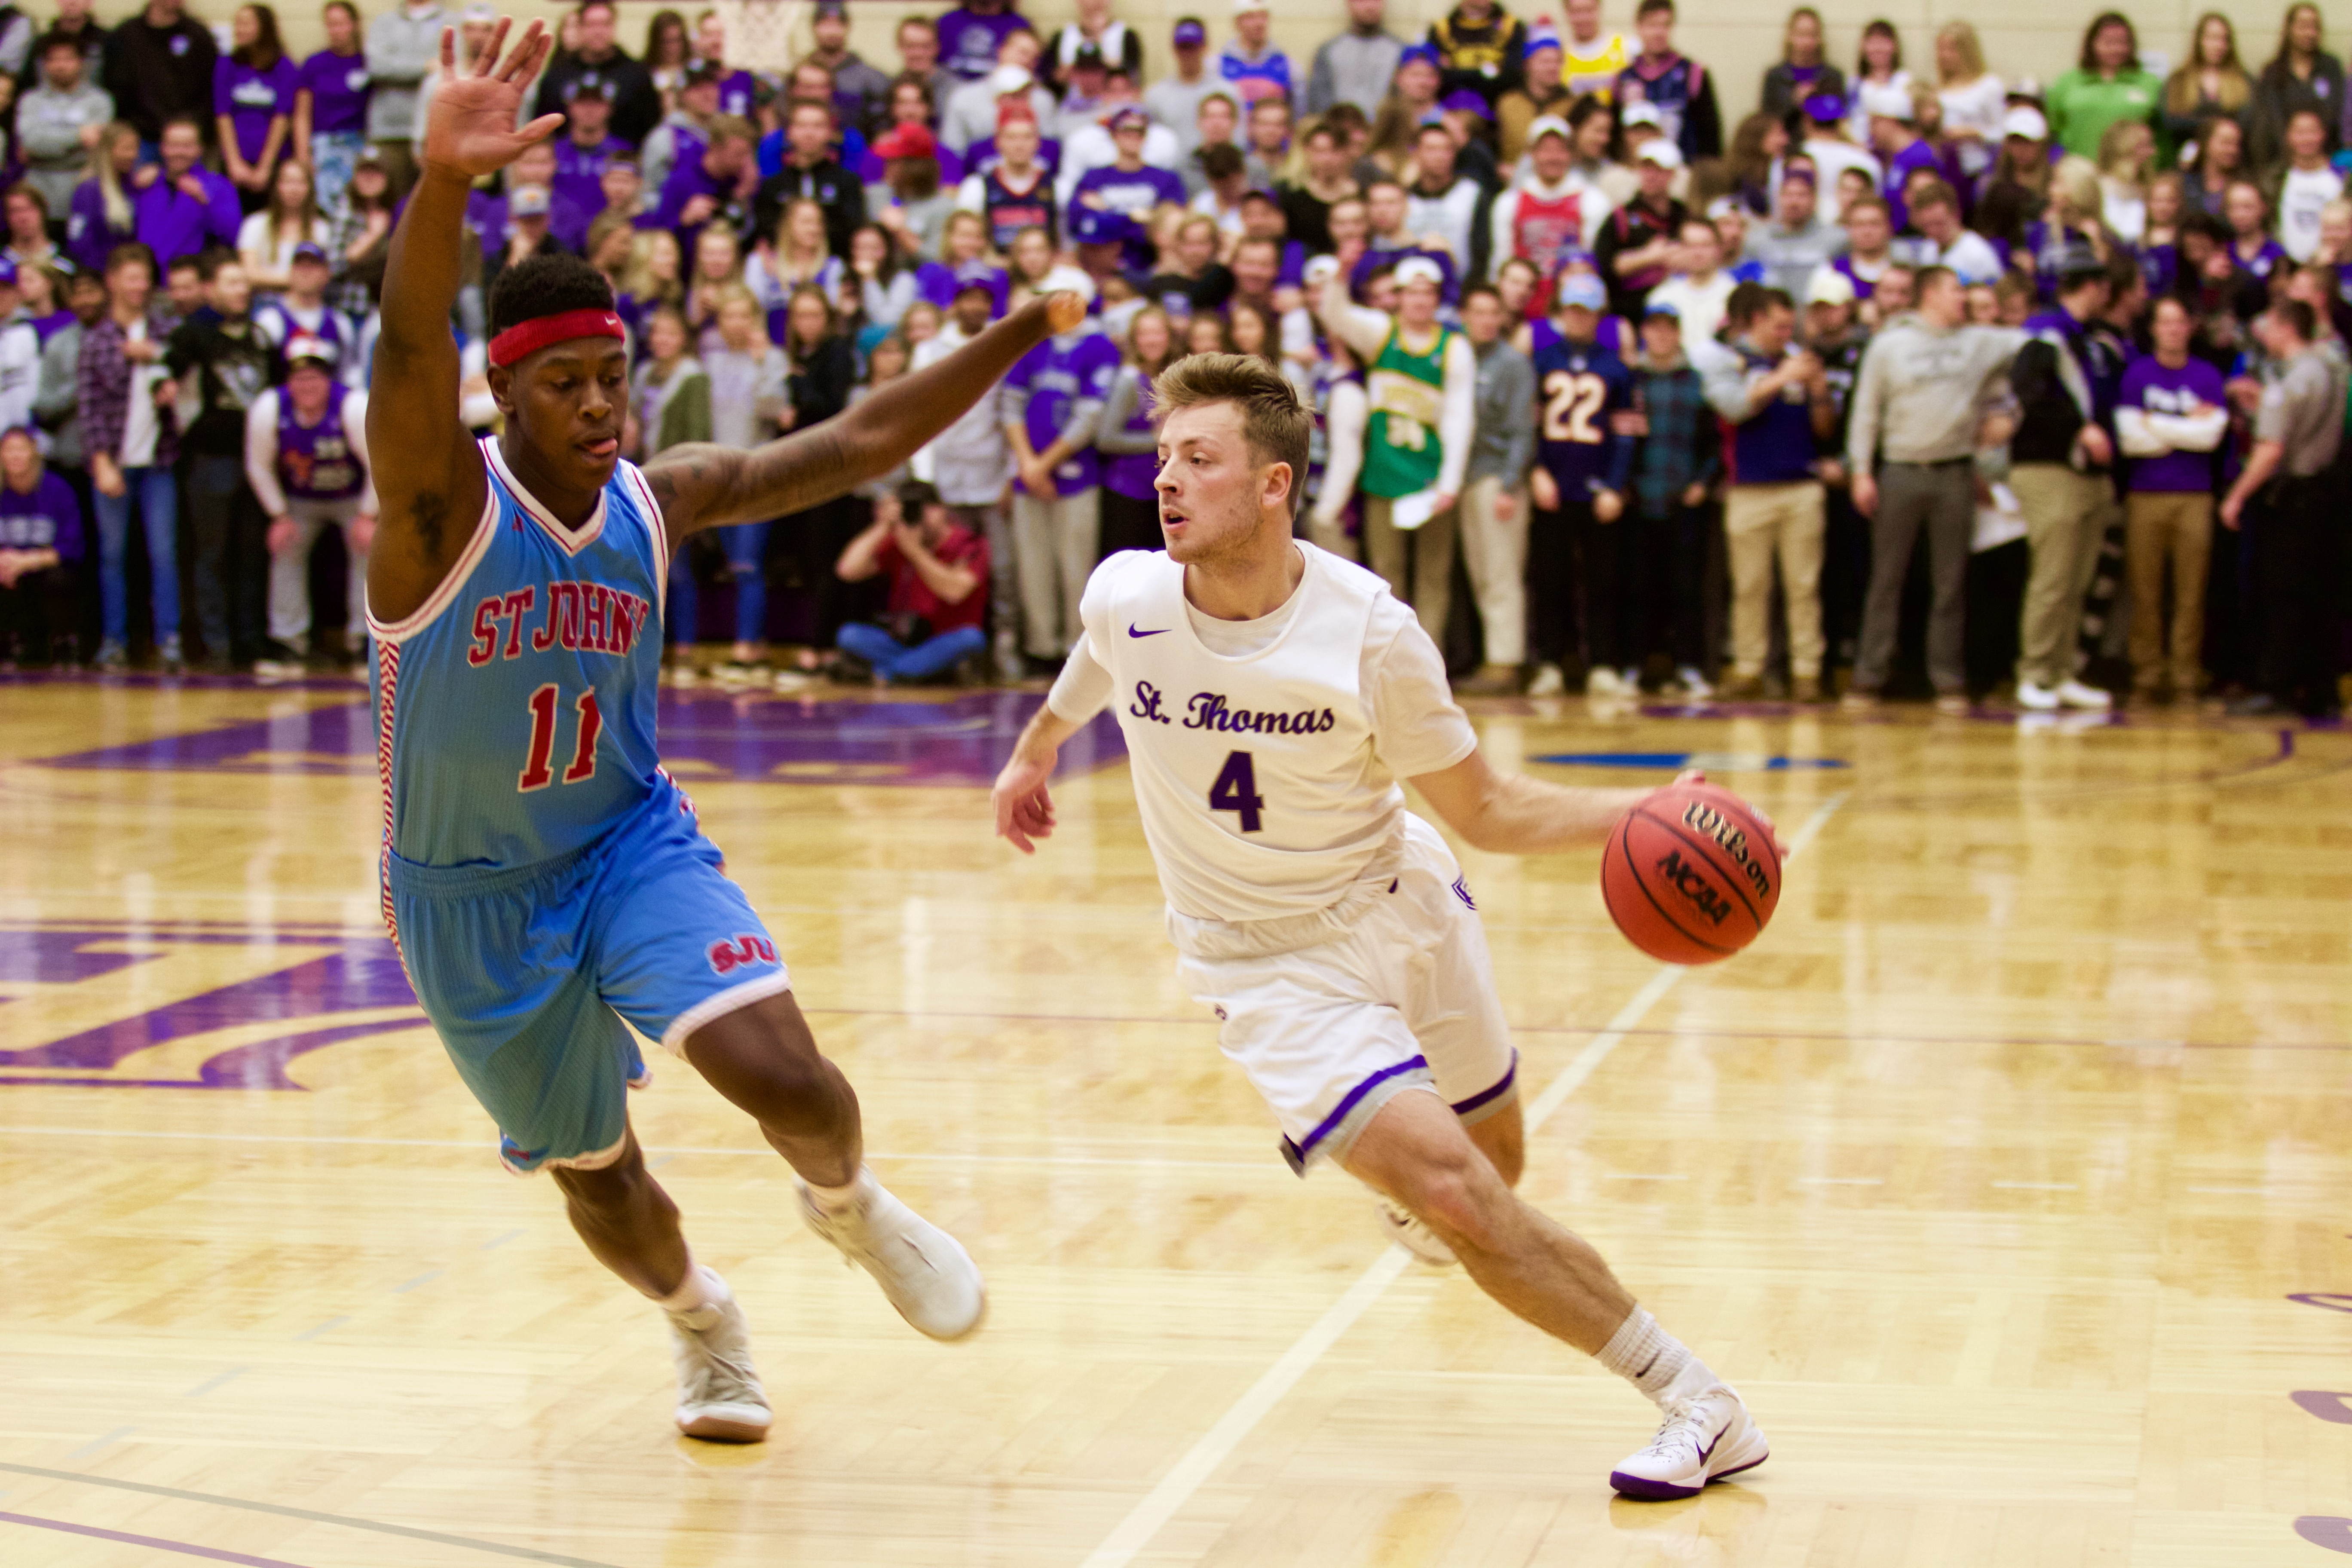 Tommies defeat Johnnies in men's basketball 82-69